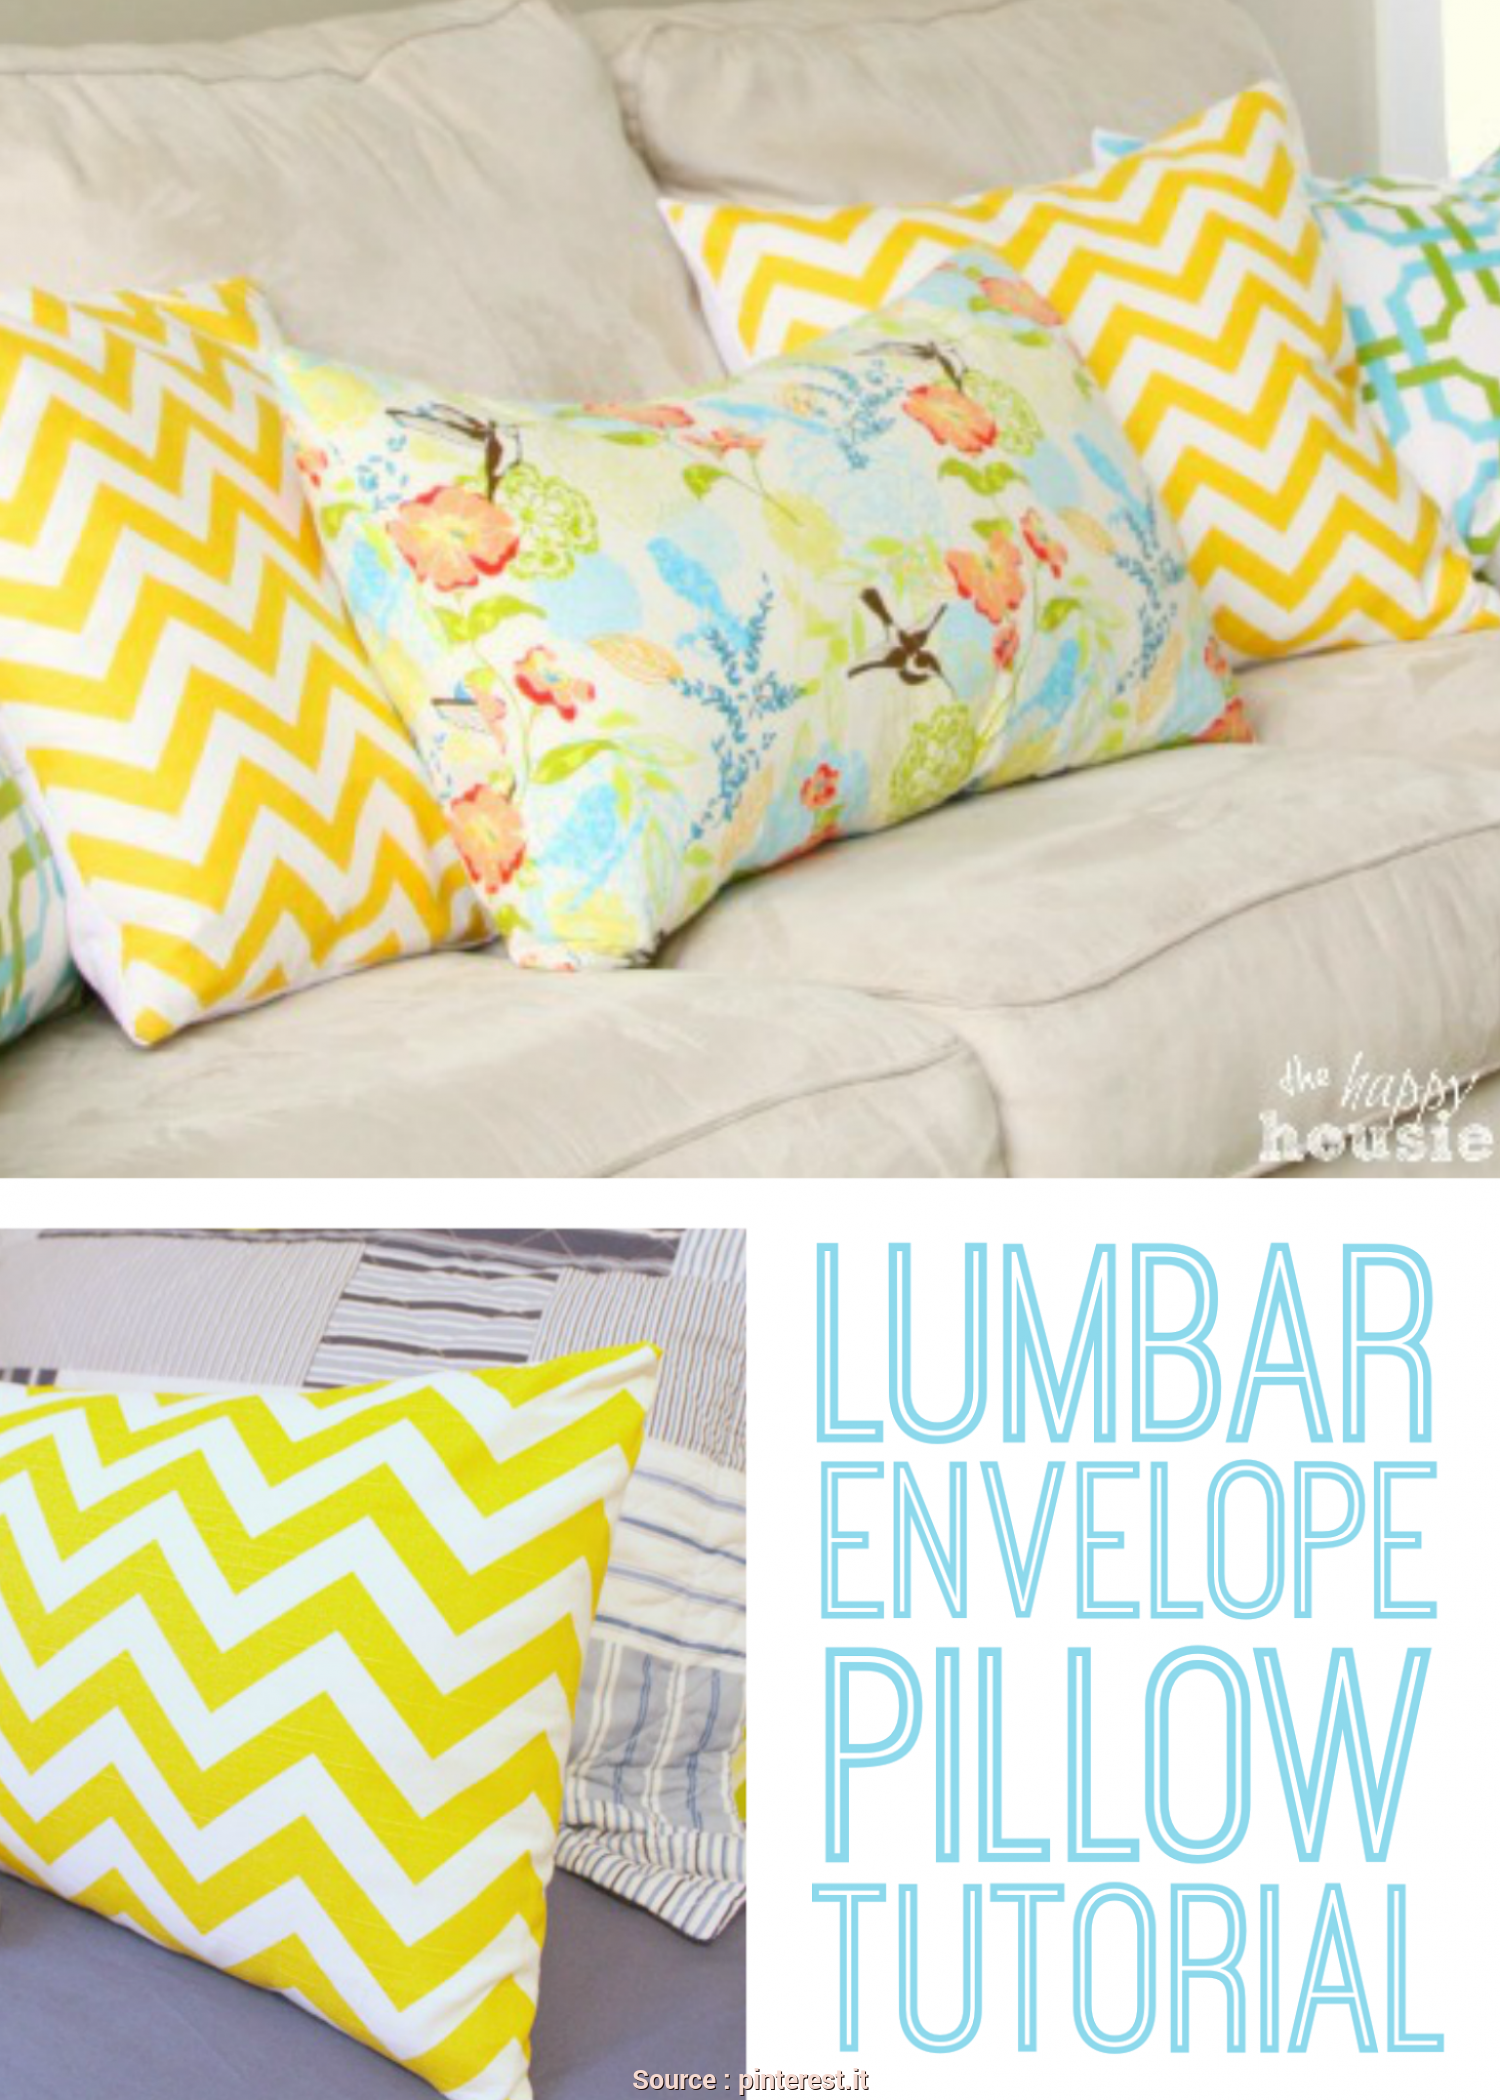 Cuscini Divano Tutorial, Magnifico Lumbar-Envelope-Pillow Easy To Follow Directions, Used, Classroom Pillows Cuscini Da